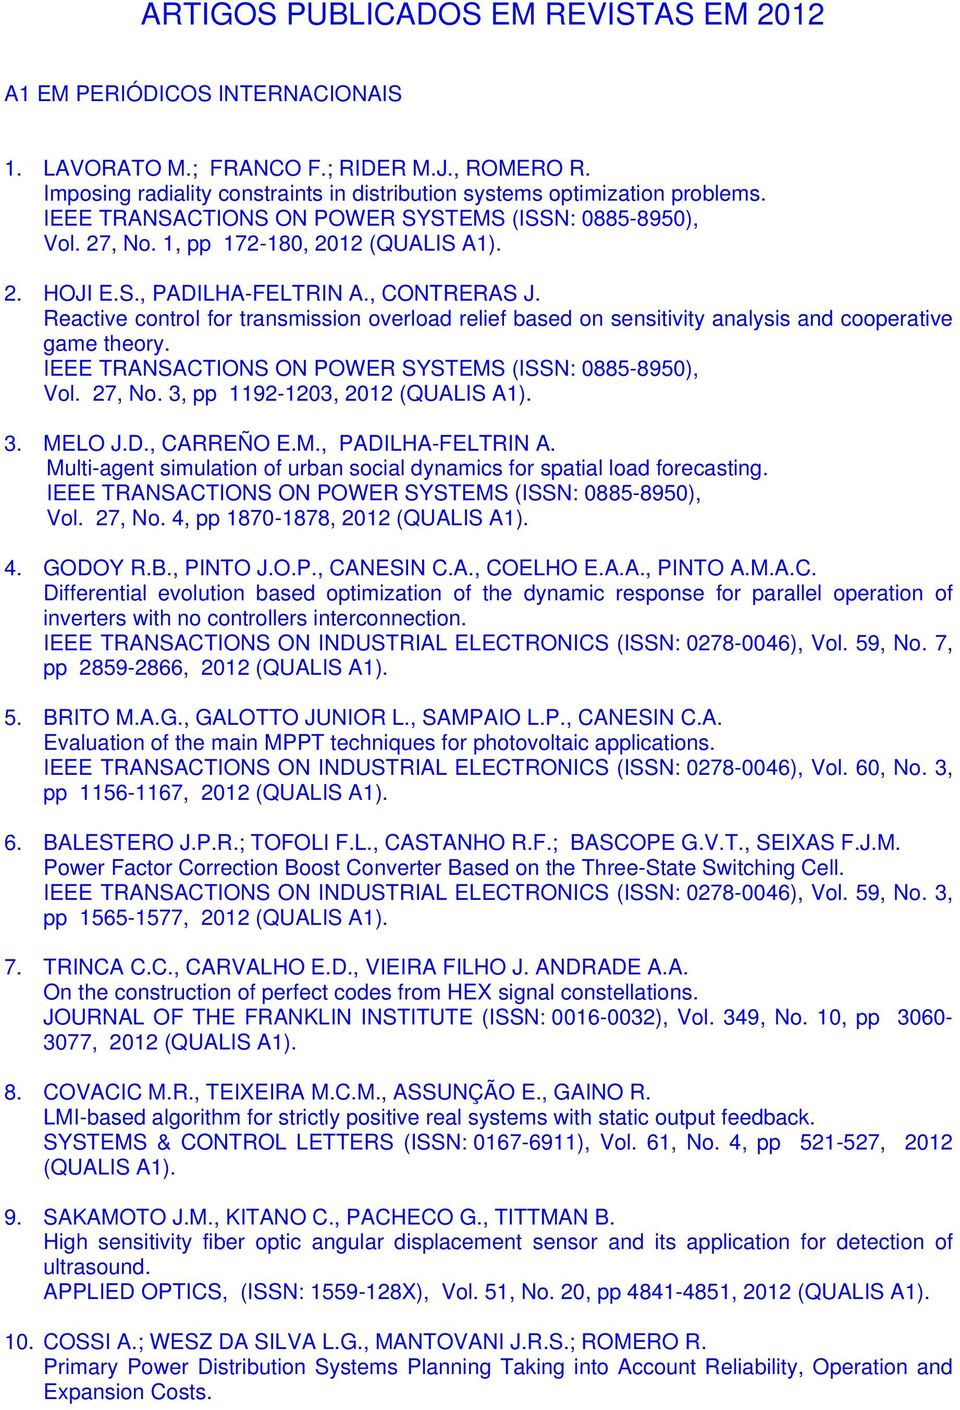 27, No. 3, pp 1192-1203, 2012 3. MELO J.D., CARREÑO E.M., PADILHA-FELTRIN A. Multi-agent simulation of urban social dynamics for spatial load forecasting. Vol. 27, No. 4, pp 1870-1878, 2012 4.